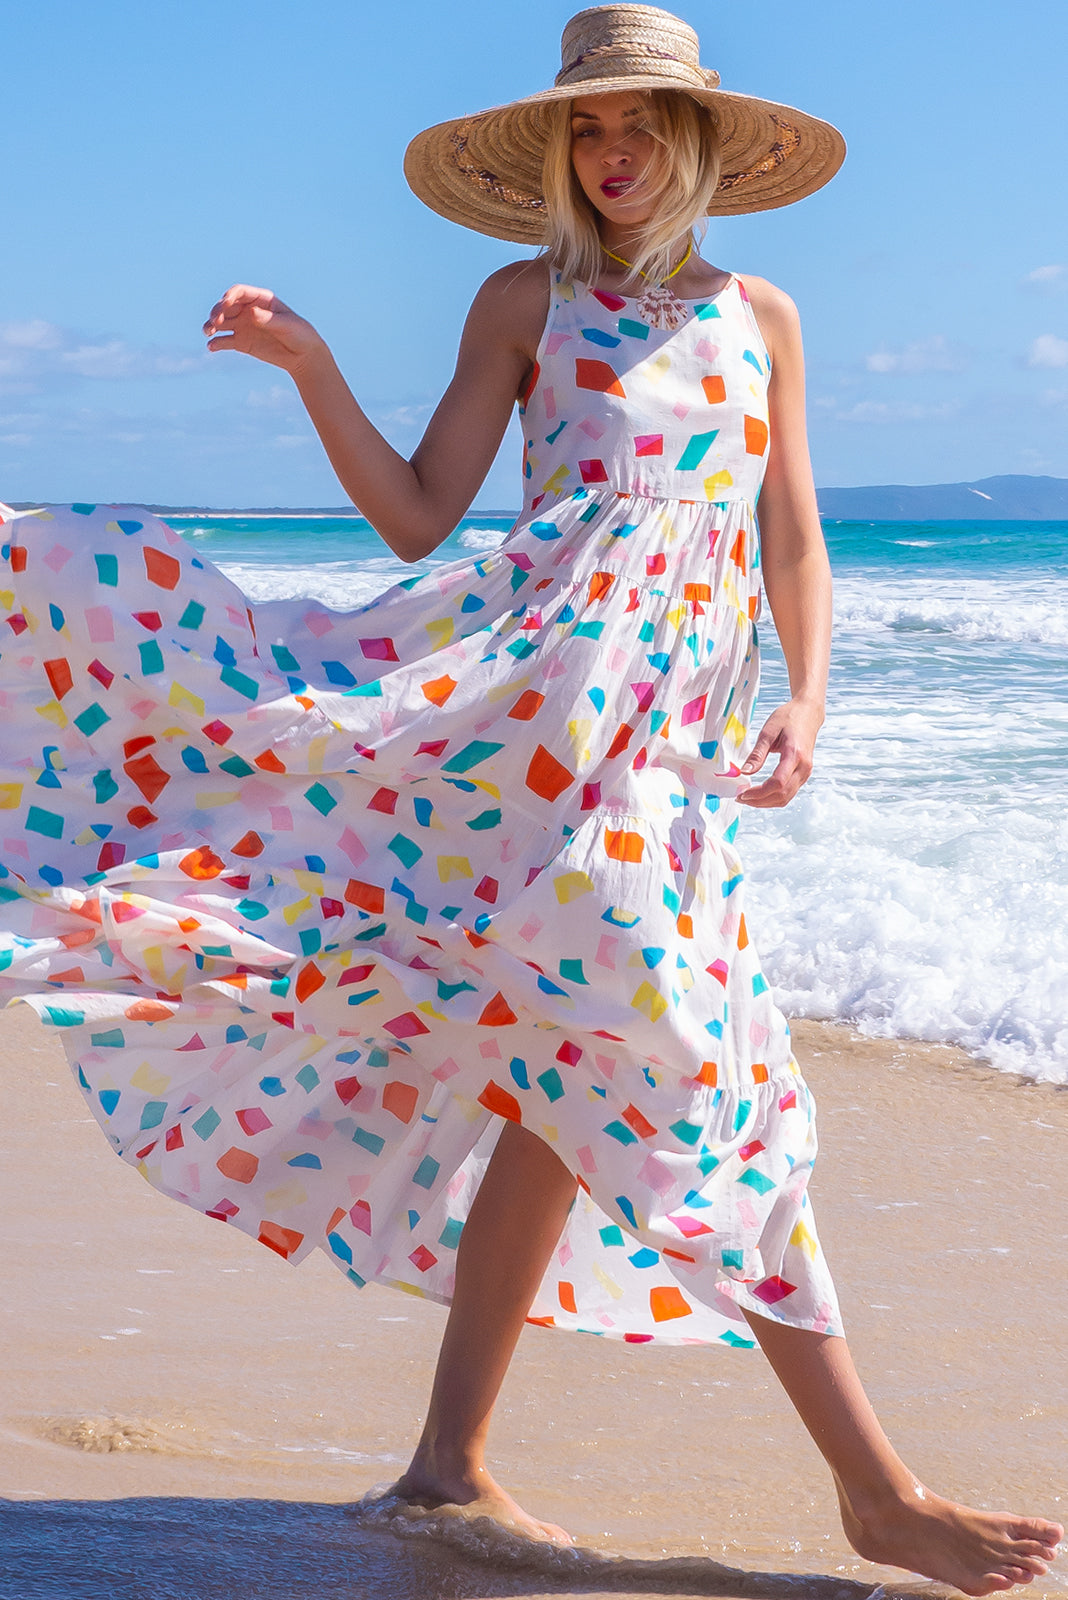 The Lulu Darling White Miro Maxi Dress features high neck with thin straps, full, tiered skirt falling from under bust, deep side pockets and cotton/rayon blend. in white base with scattered colourful shapes.